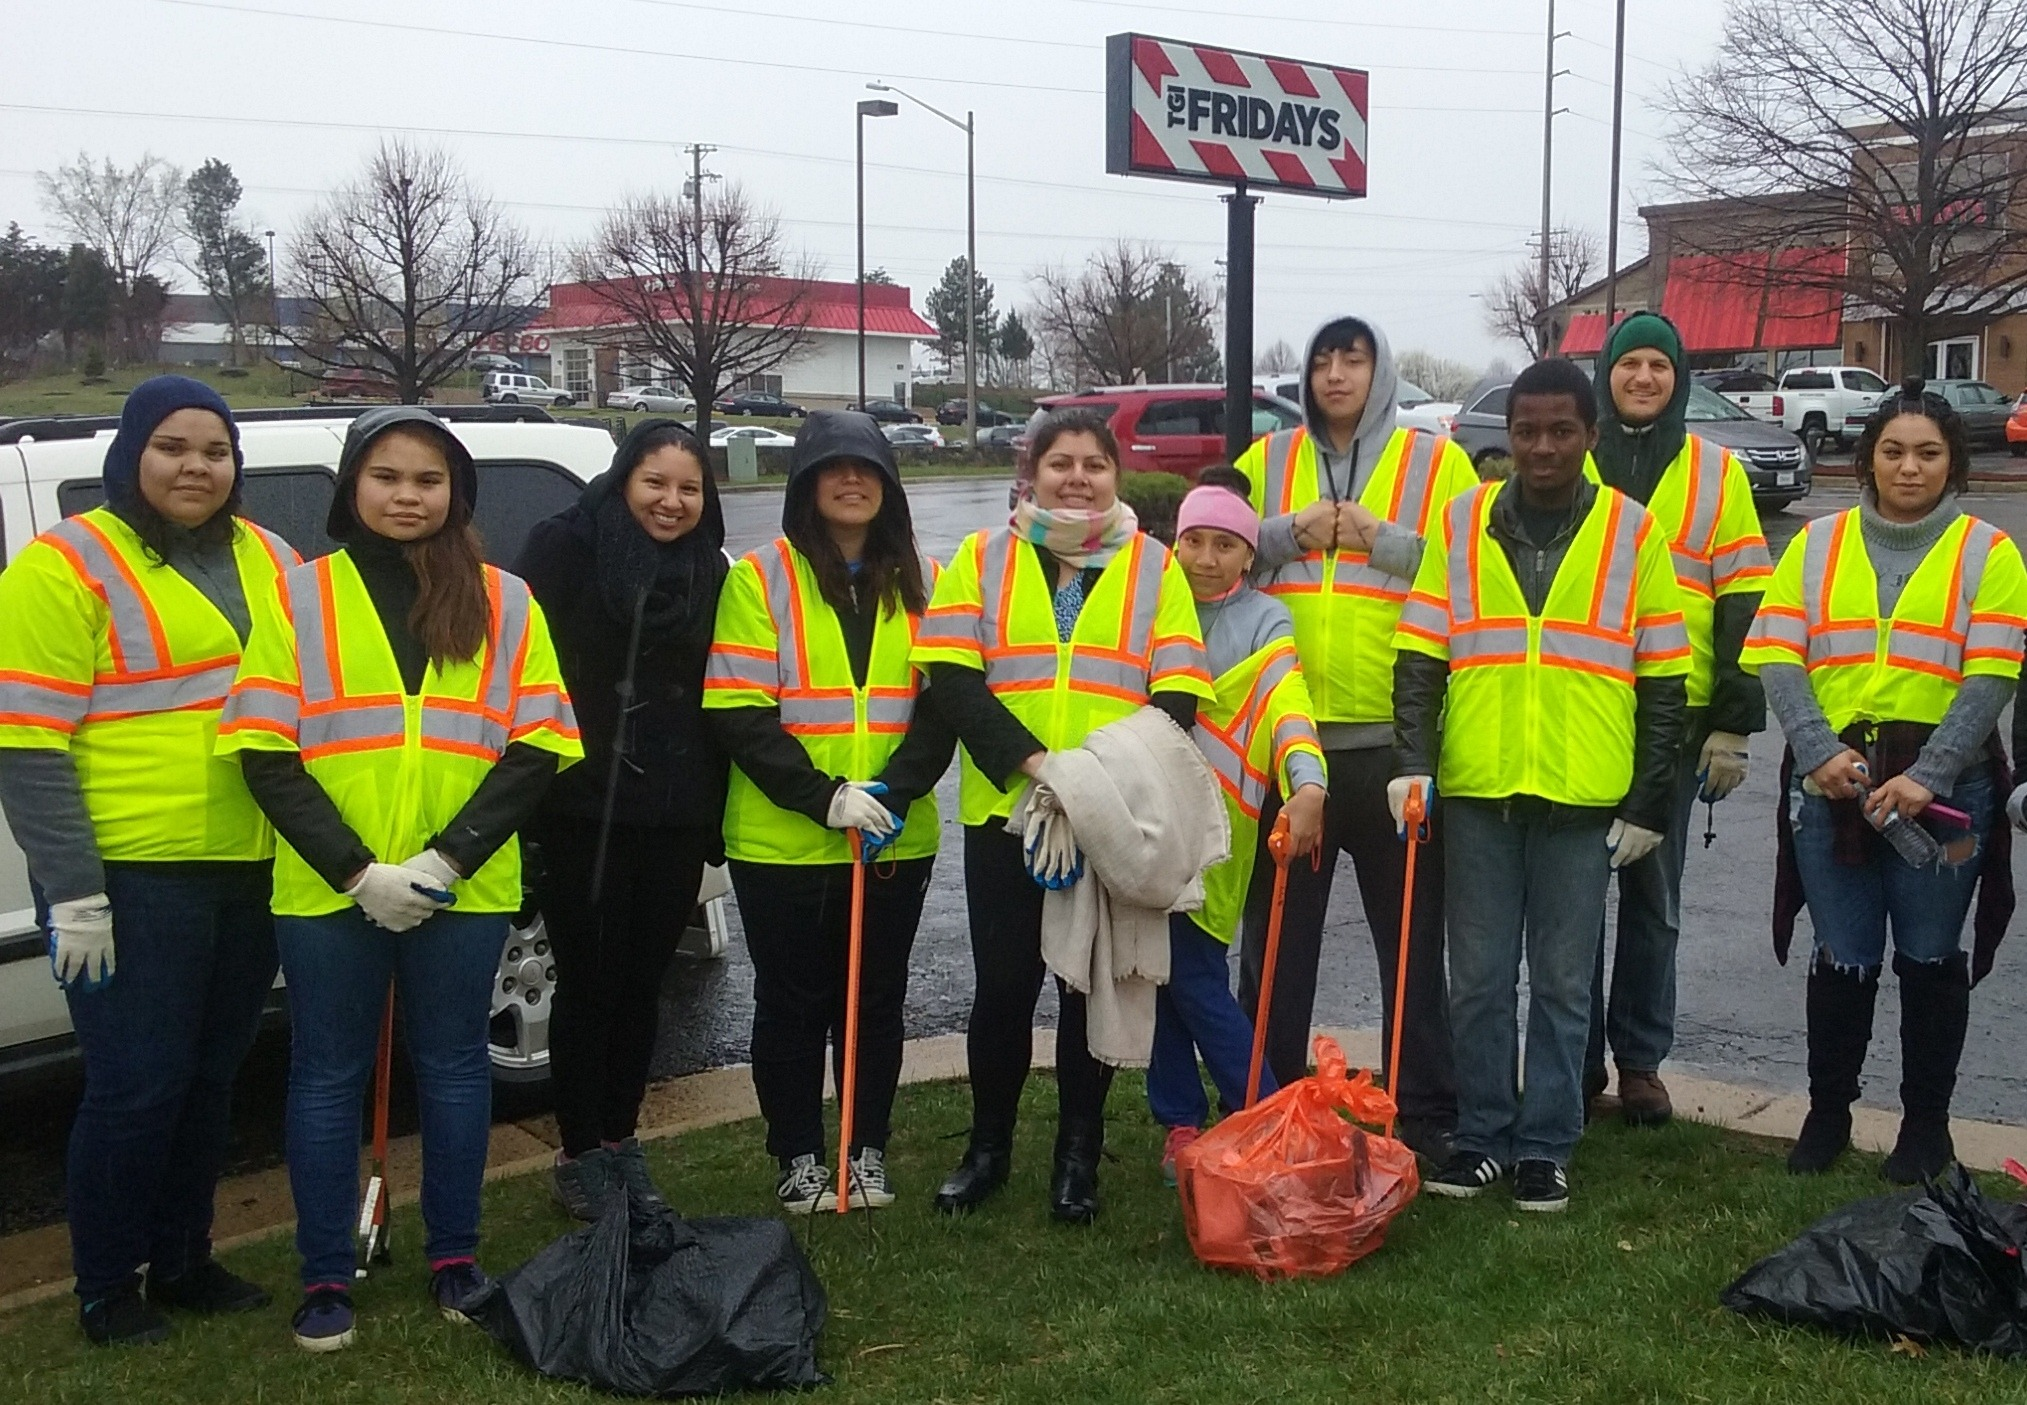 20160319 120045 1 - Community Cleanups